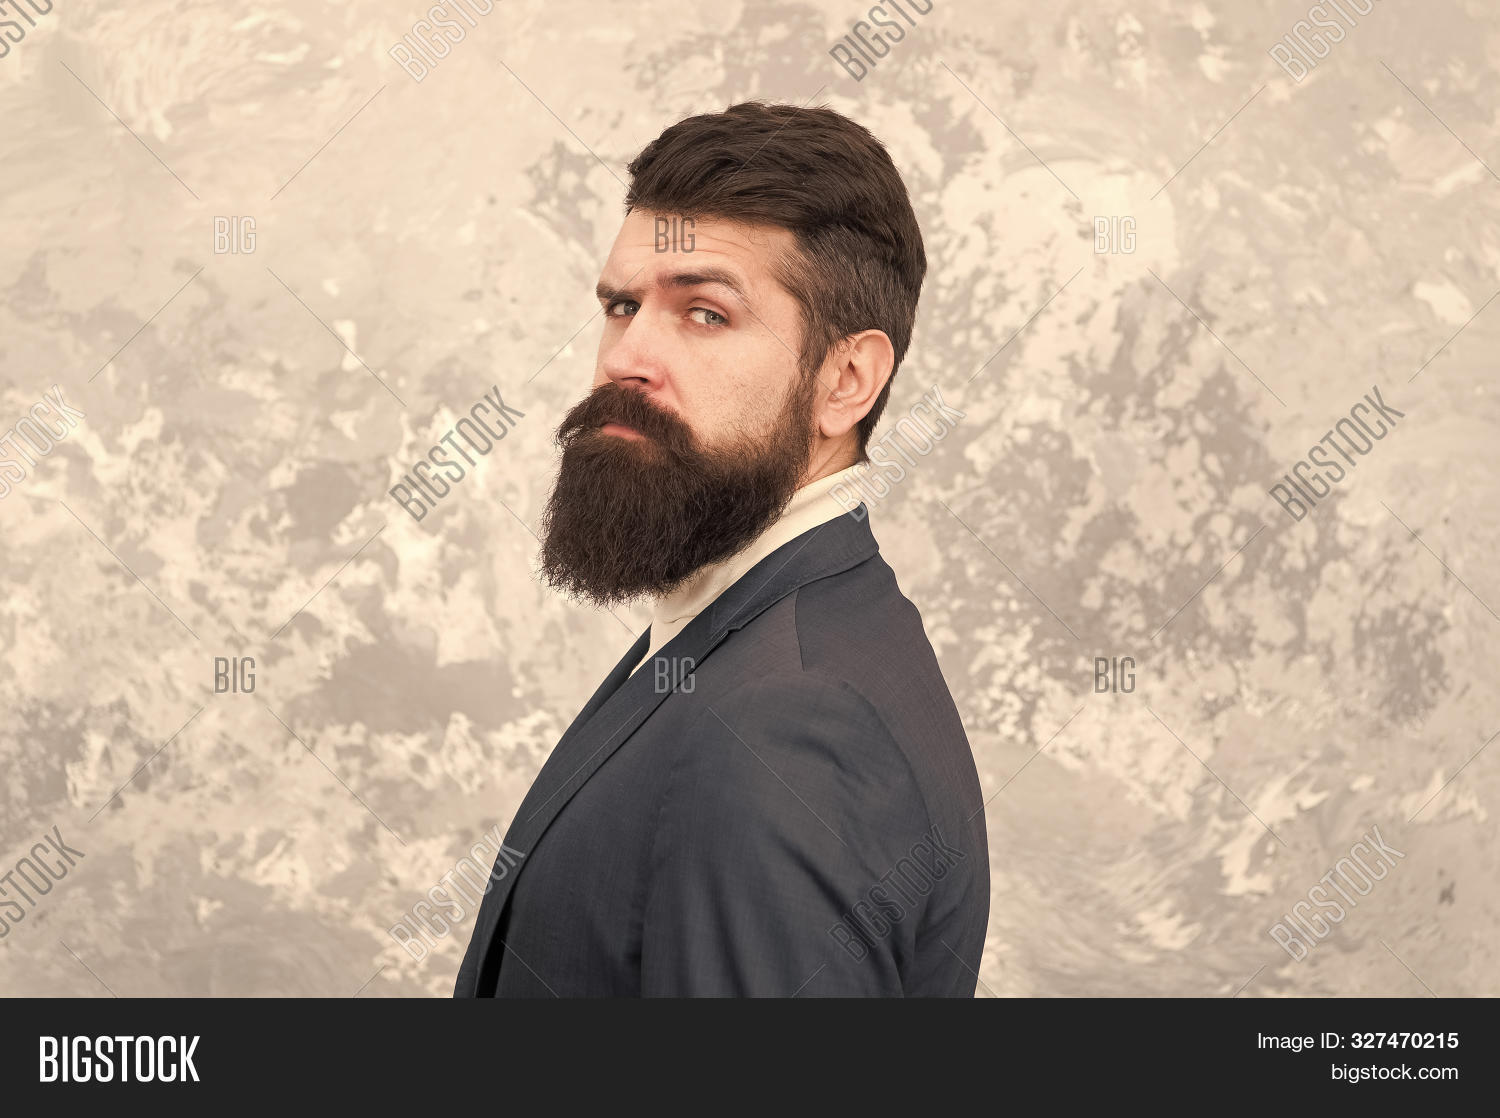 barber,beard,bearded,boss,brutal,business,businessman,care,clothes,concept,confident,director,facial,fashion,formal,grooming,guy,hair,hairdresser,handsome,hipster,lawyer,long,male,man,manager,menswear,model,modern,mustache,people,professional,salon,smart,style,stylish,suit,unshaven,wear